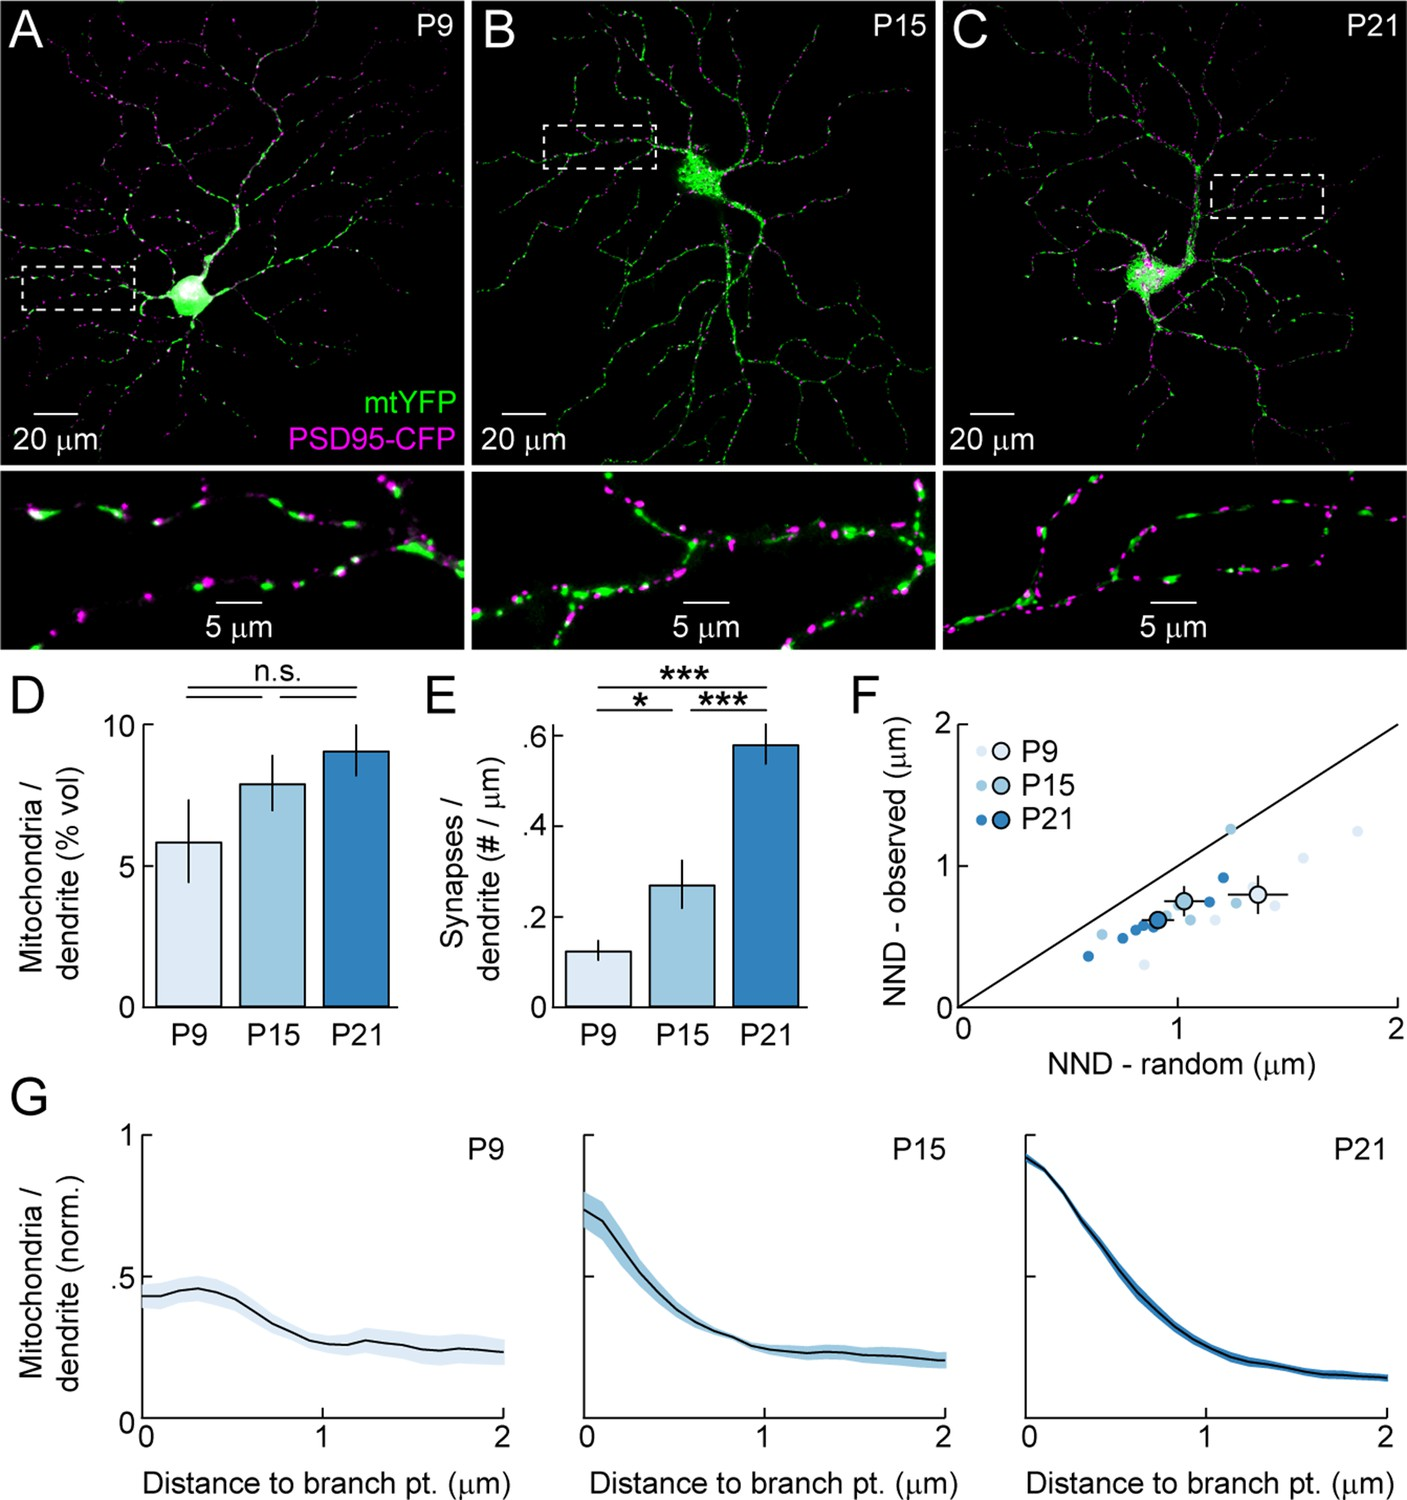 Dendritic Mitochondria Reach Stable Positions During Circuit G Five Mobile Diagram Mitochondrial Distribution In Rgc Dendrites Across Development